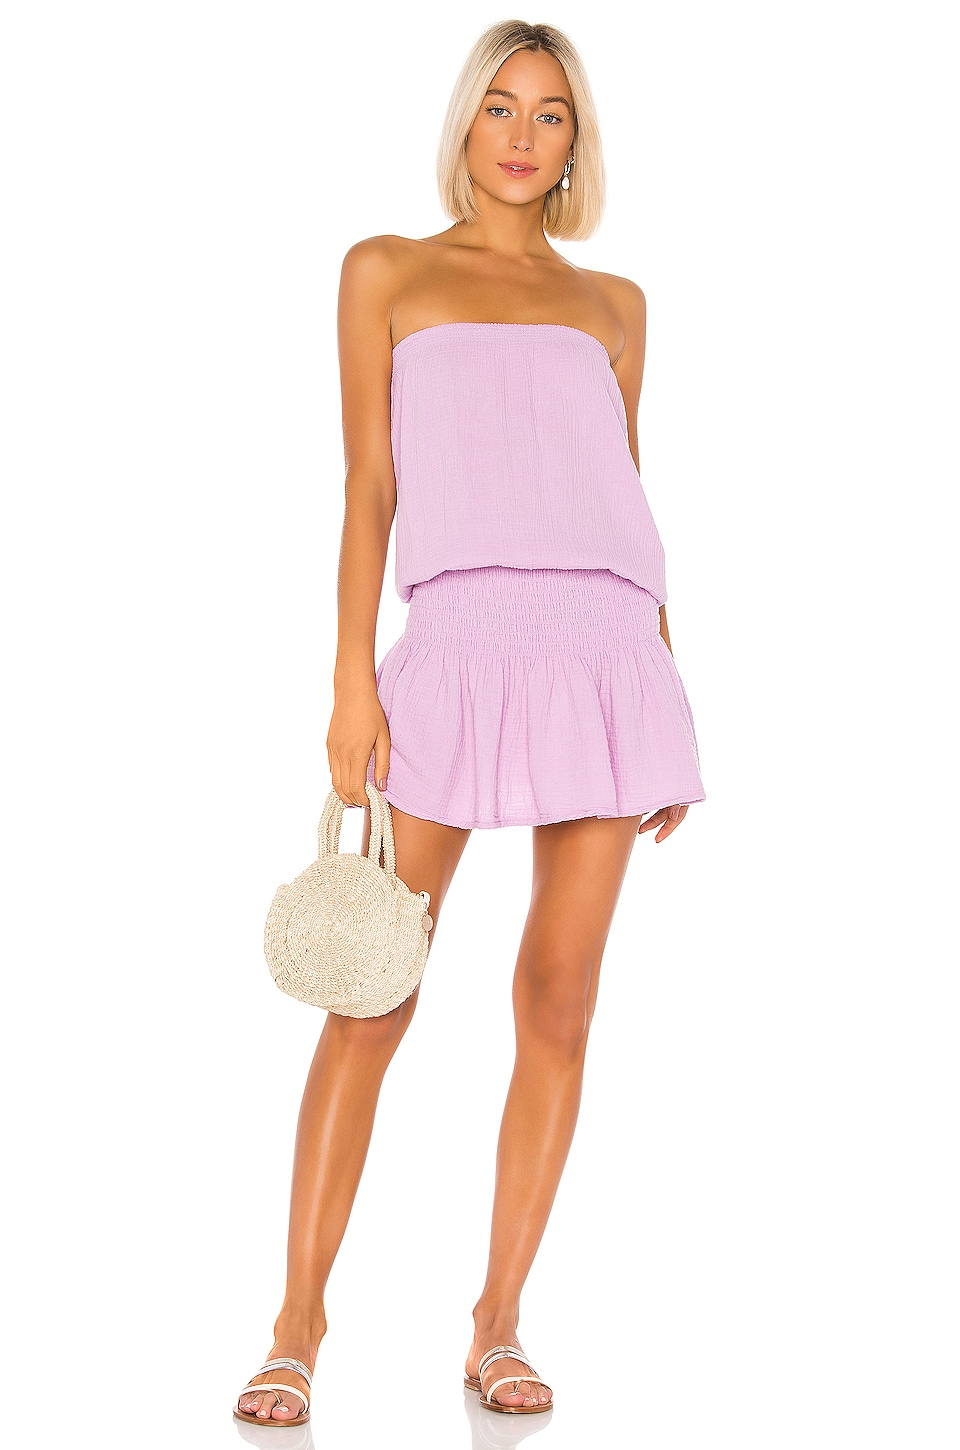 Bobi Beach Gauze Dress in Aster